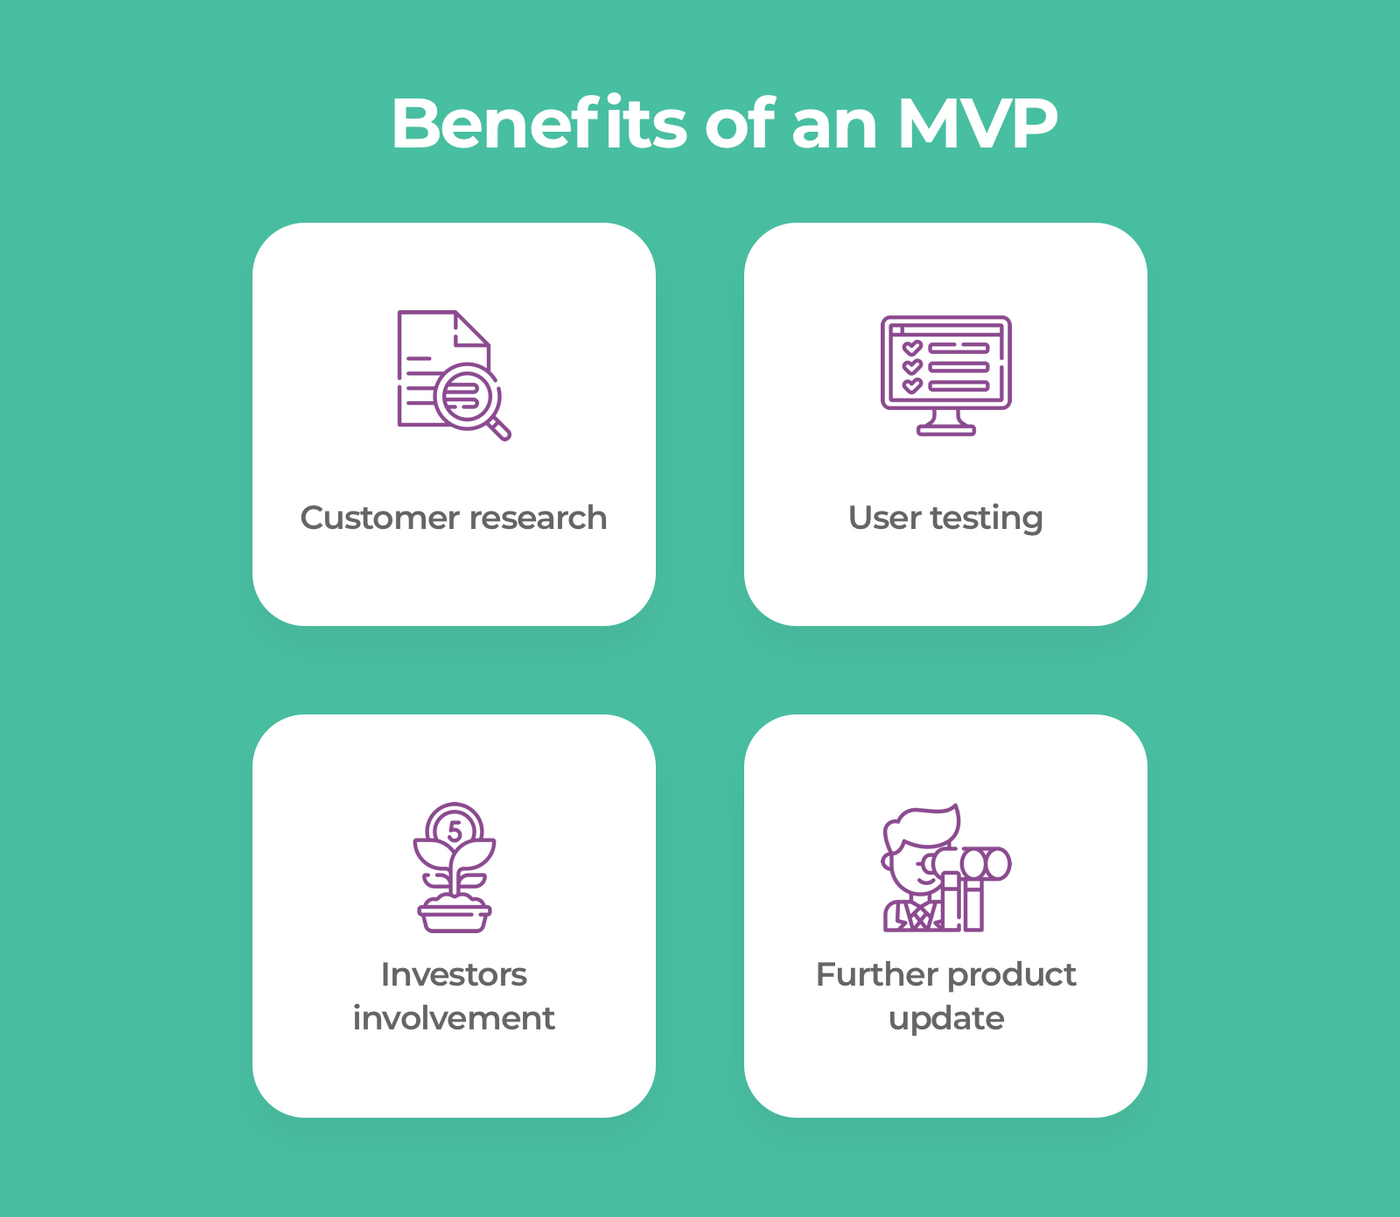 How to use an MVP